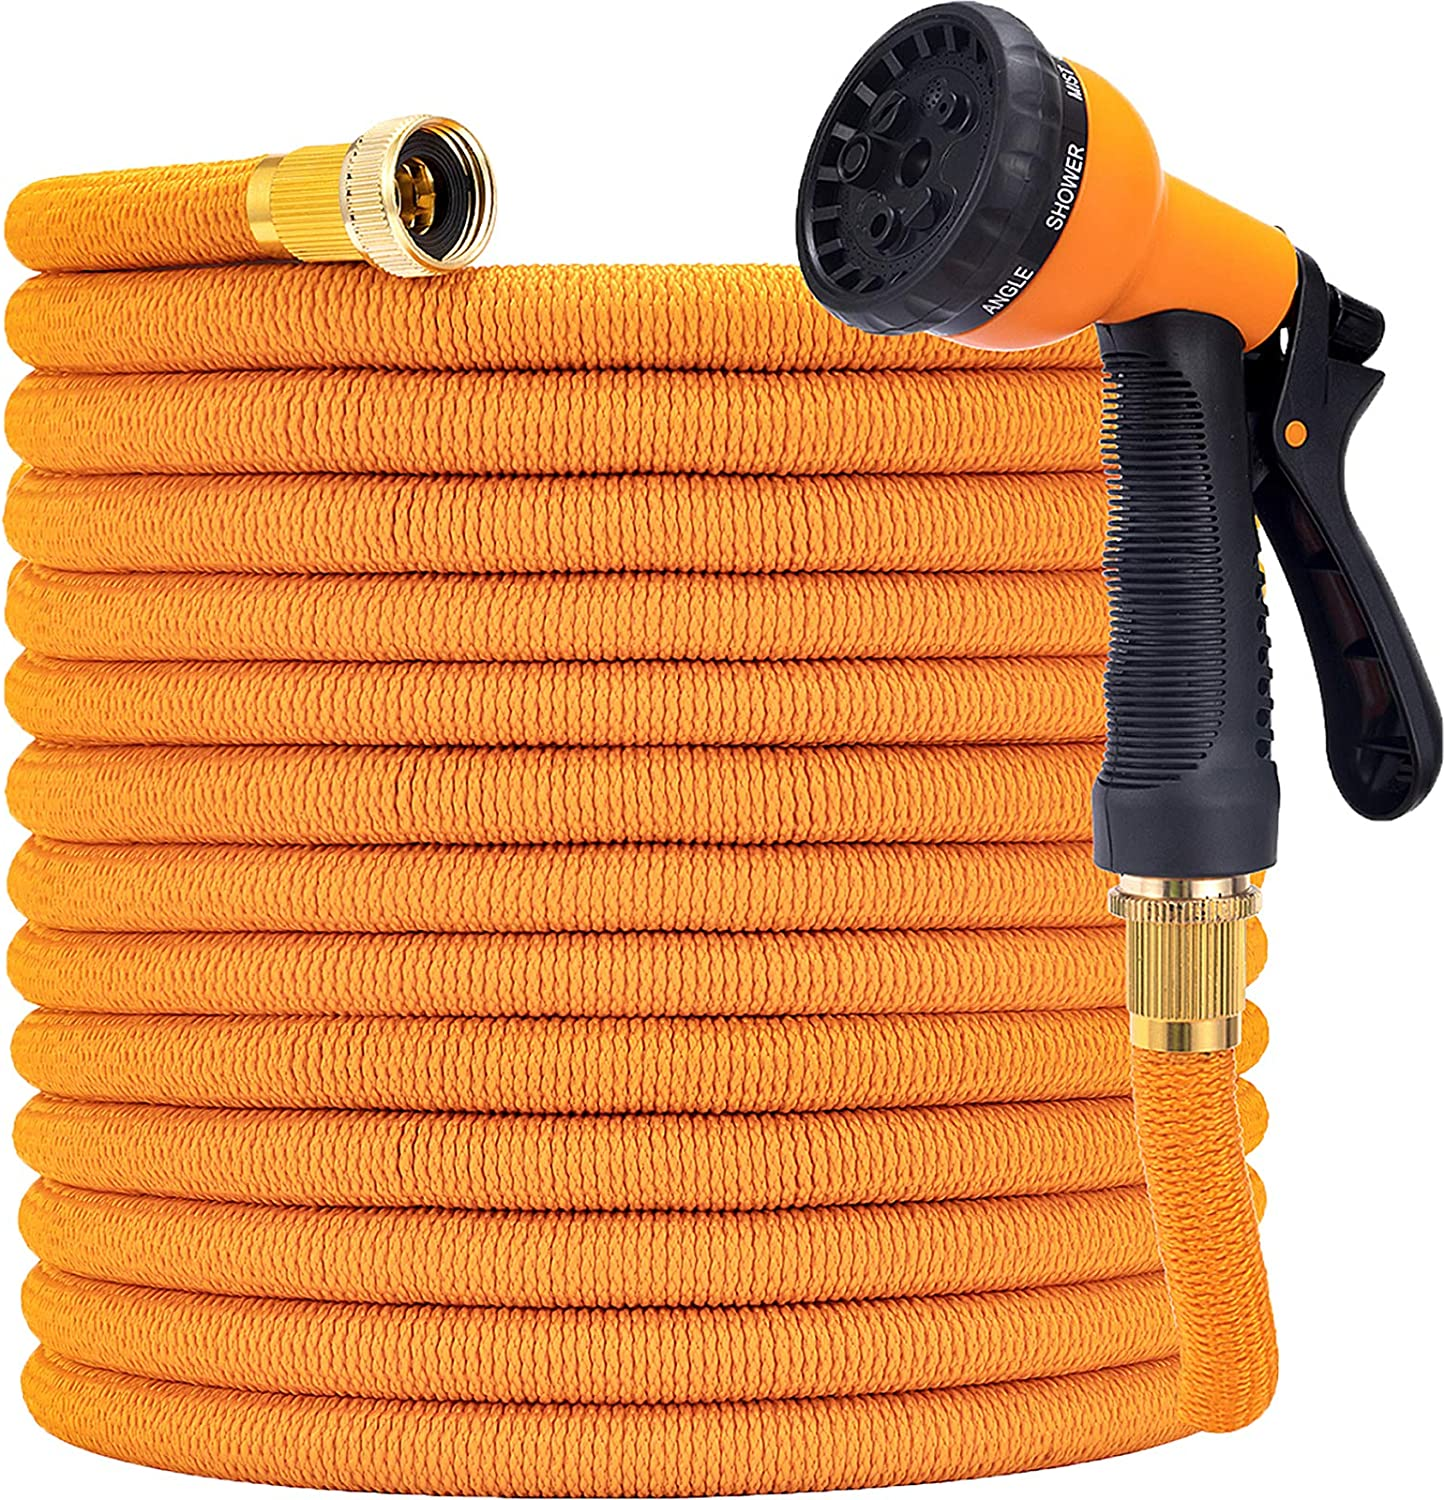 YOJULY Garden Hose Expandable -50ft Expandable Hose, Leakproof Lightweight Expanding Garden Water Hose 3-Layers Latex,Best Choice for Watering and Washing